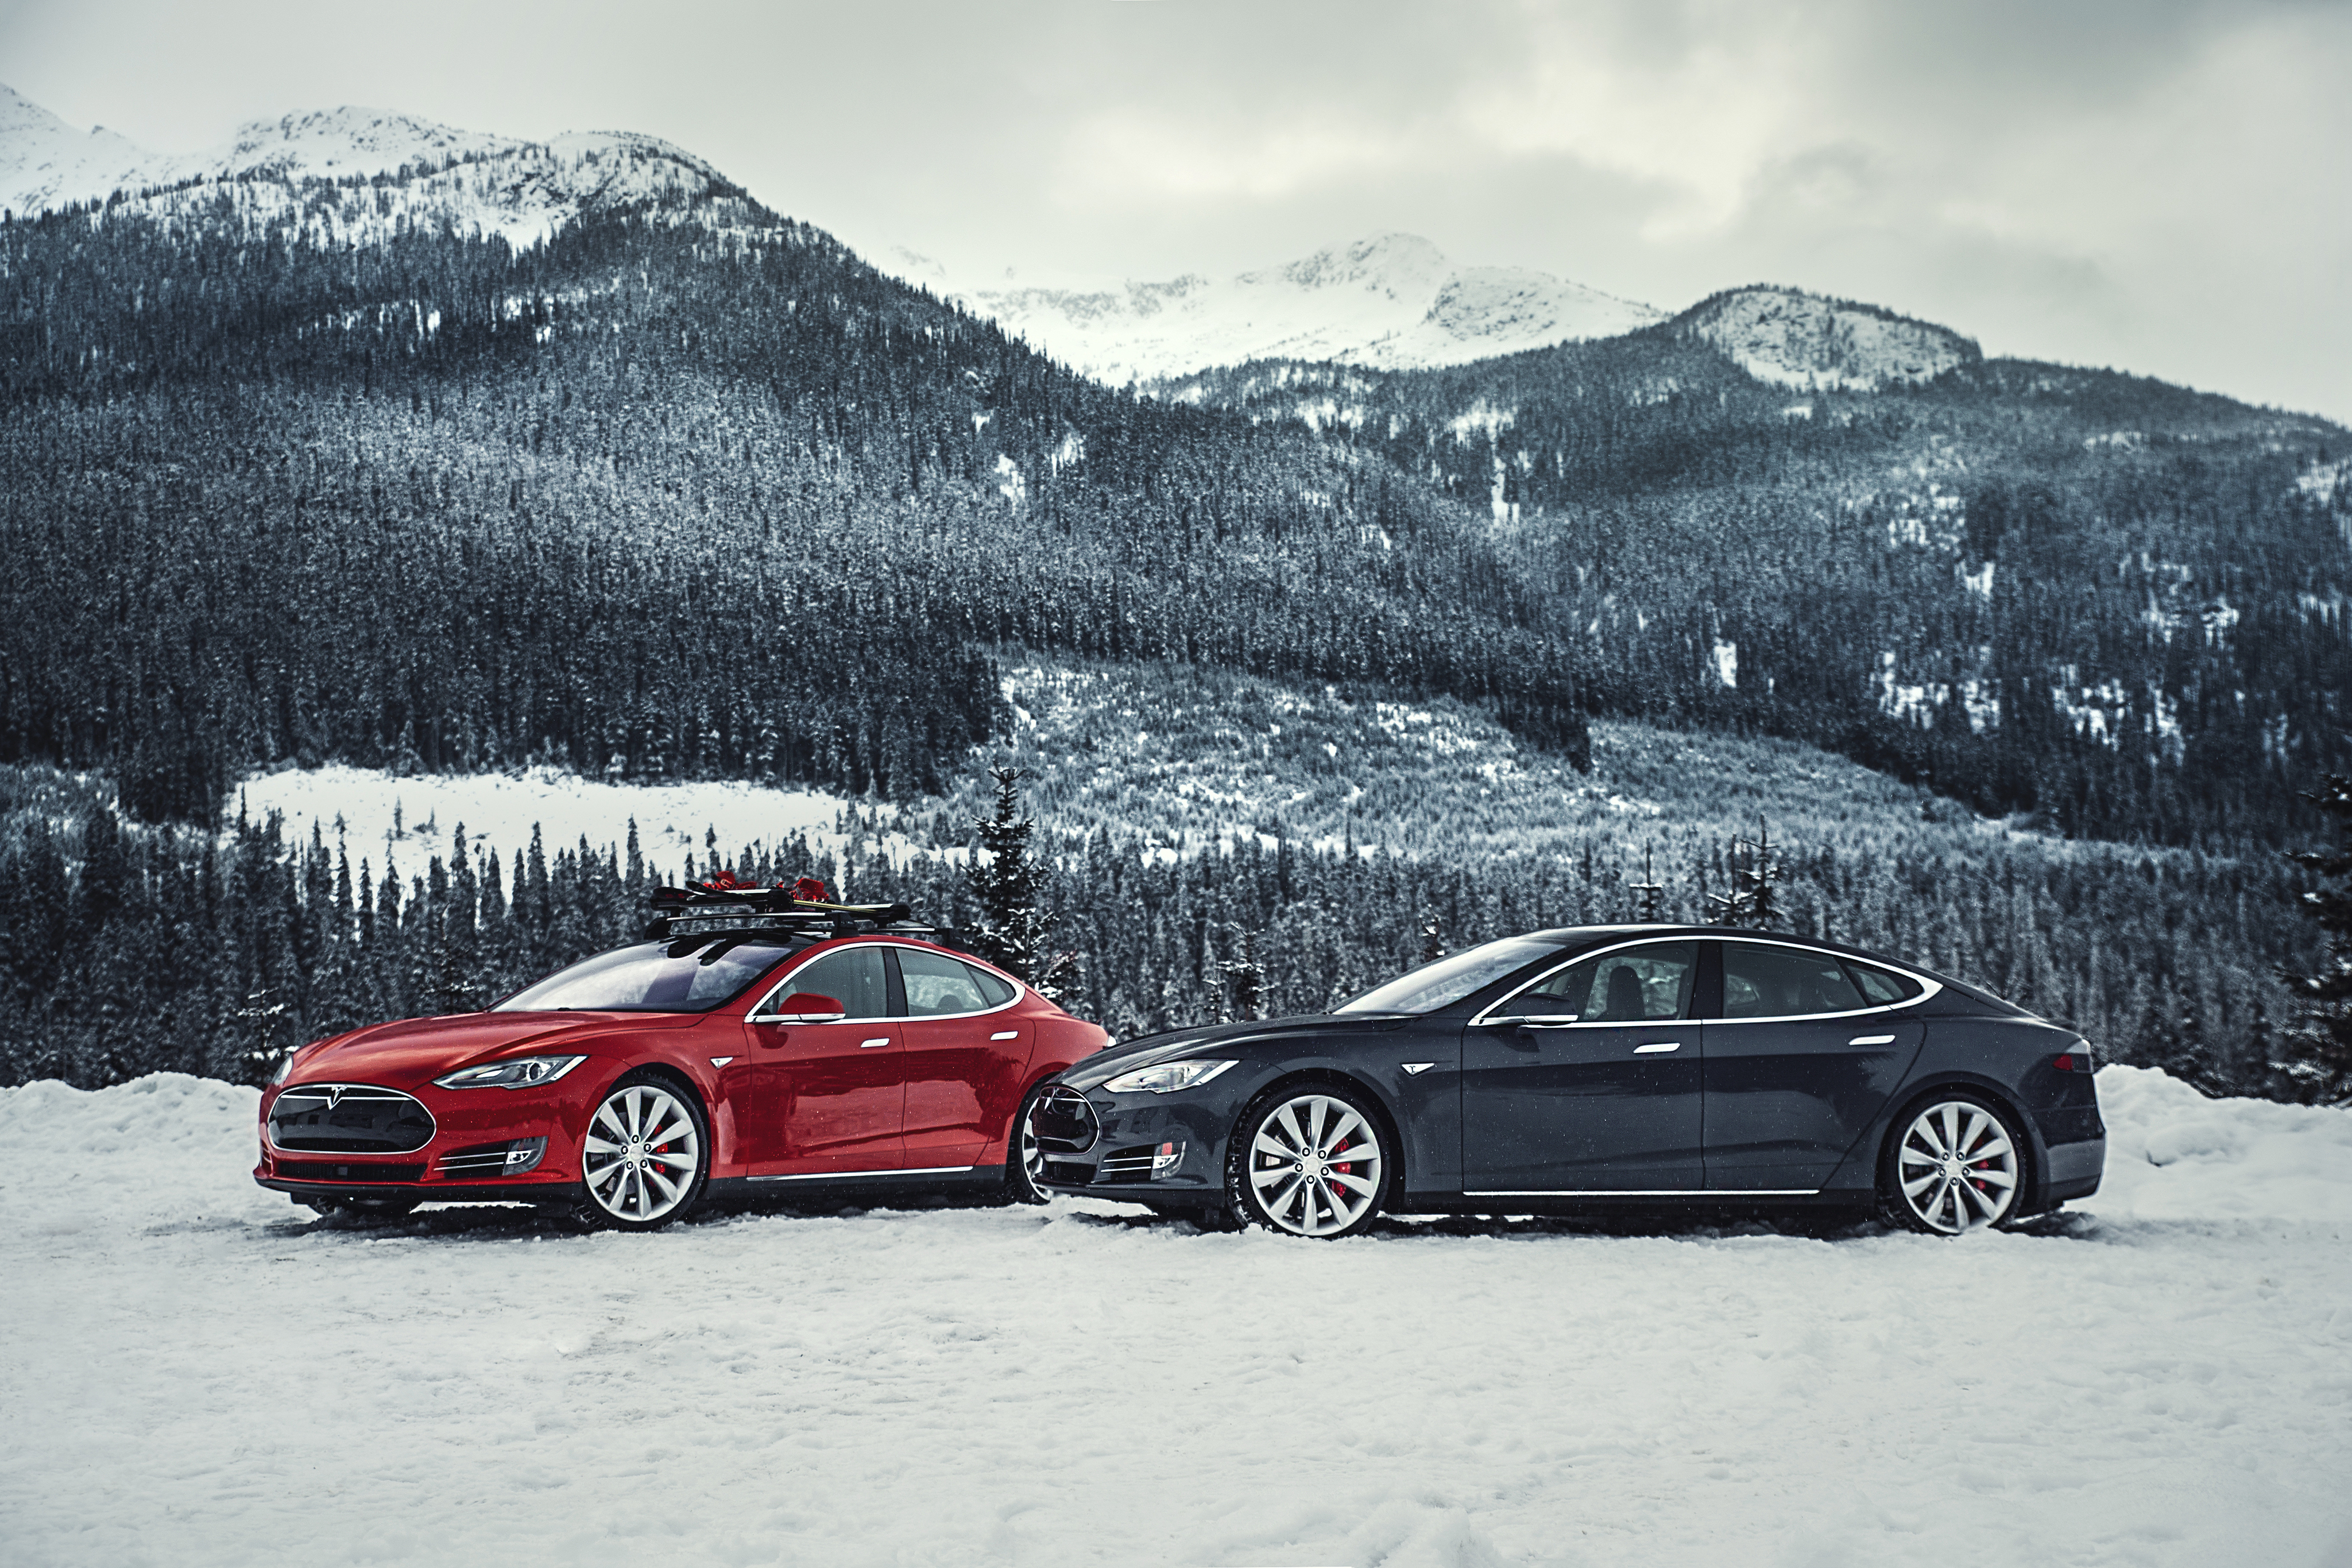 High Quality Tesla Wallpapers, Twanda Givens